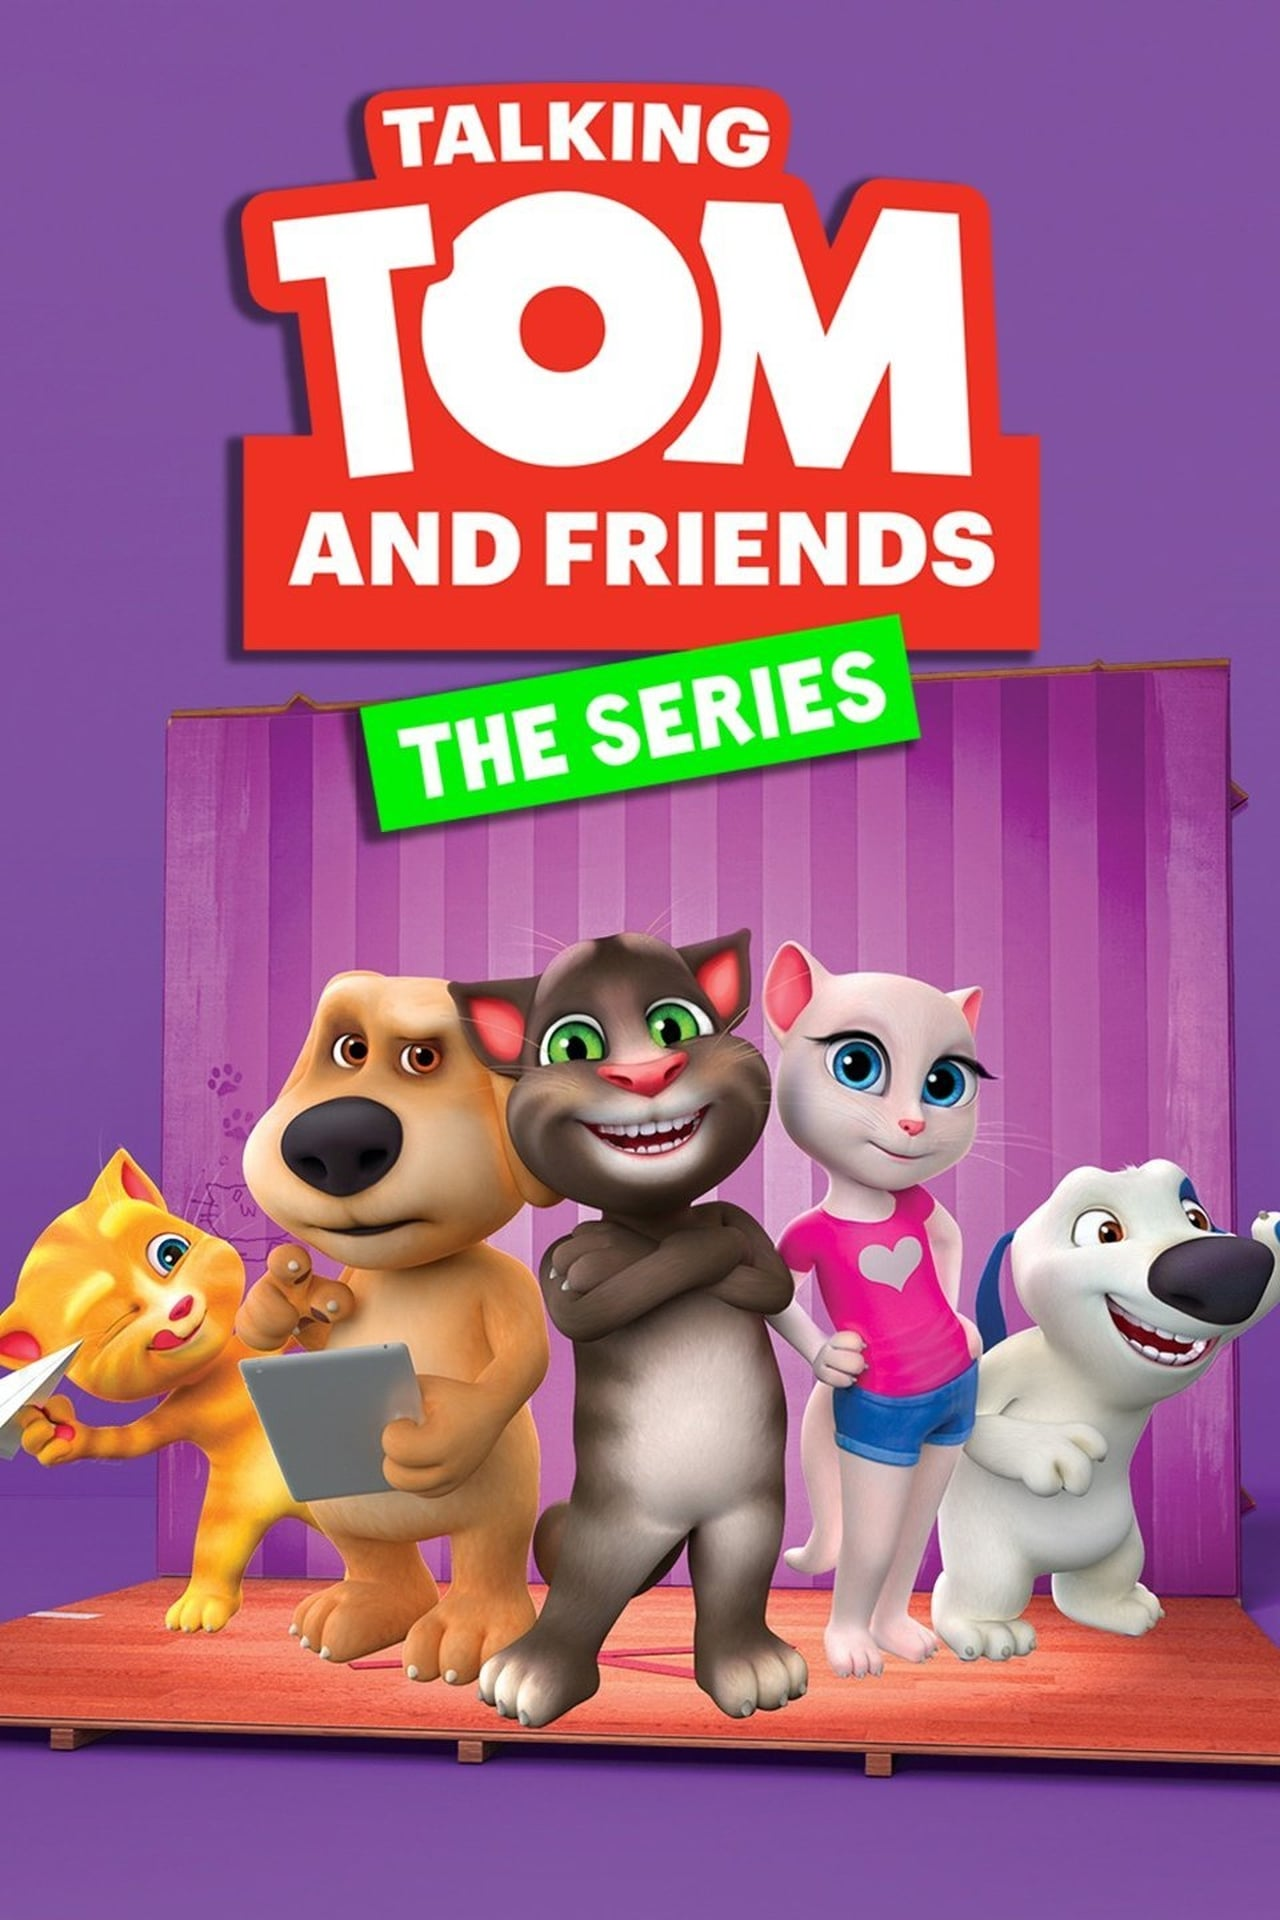 Talking Tom And Friends Season 1 (2014) putlockers cafe